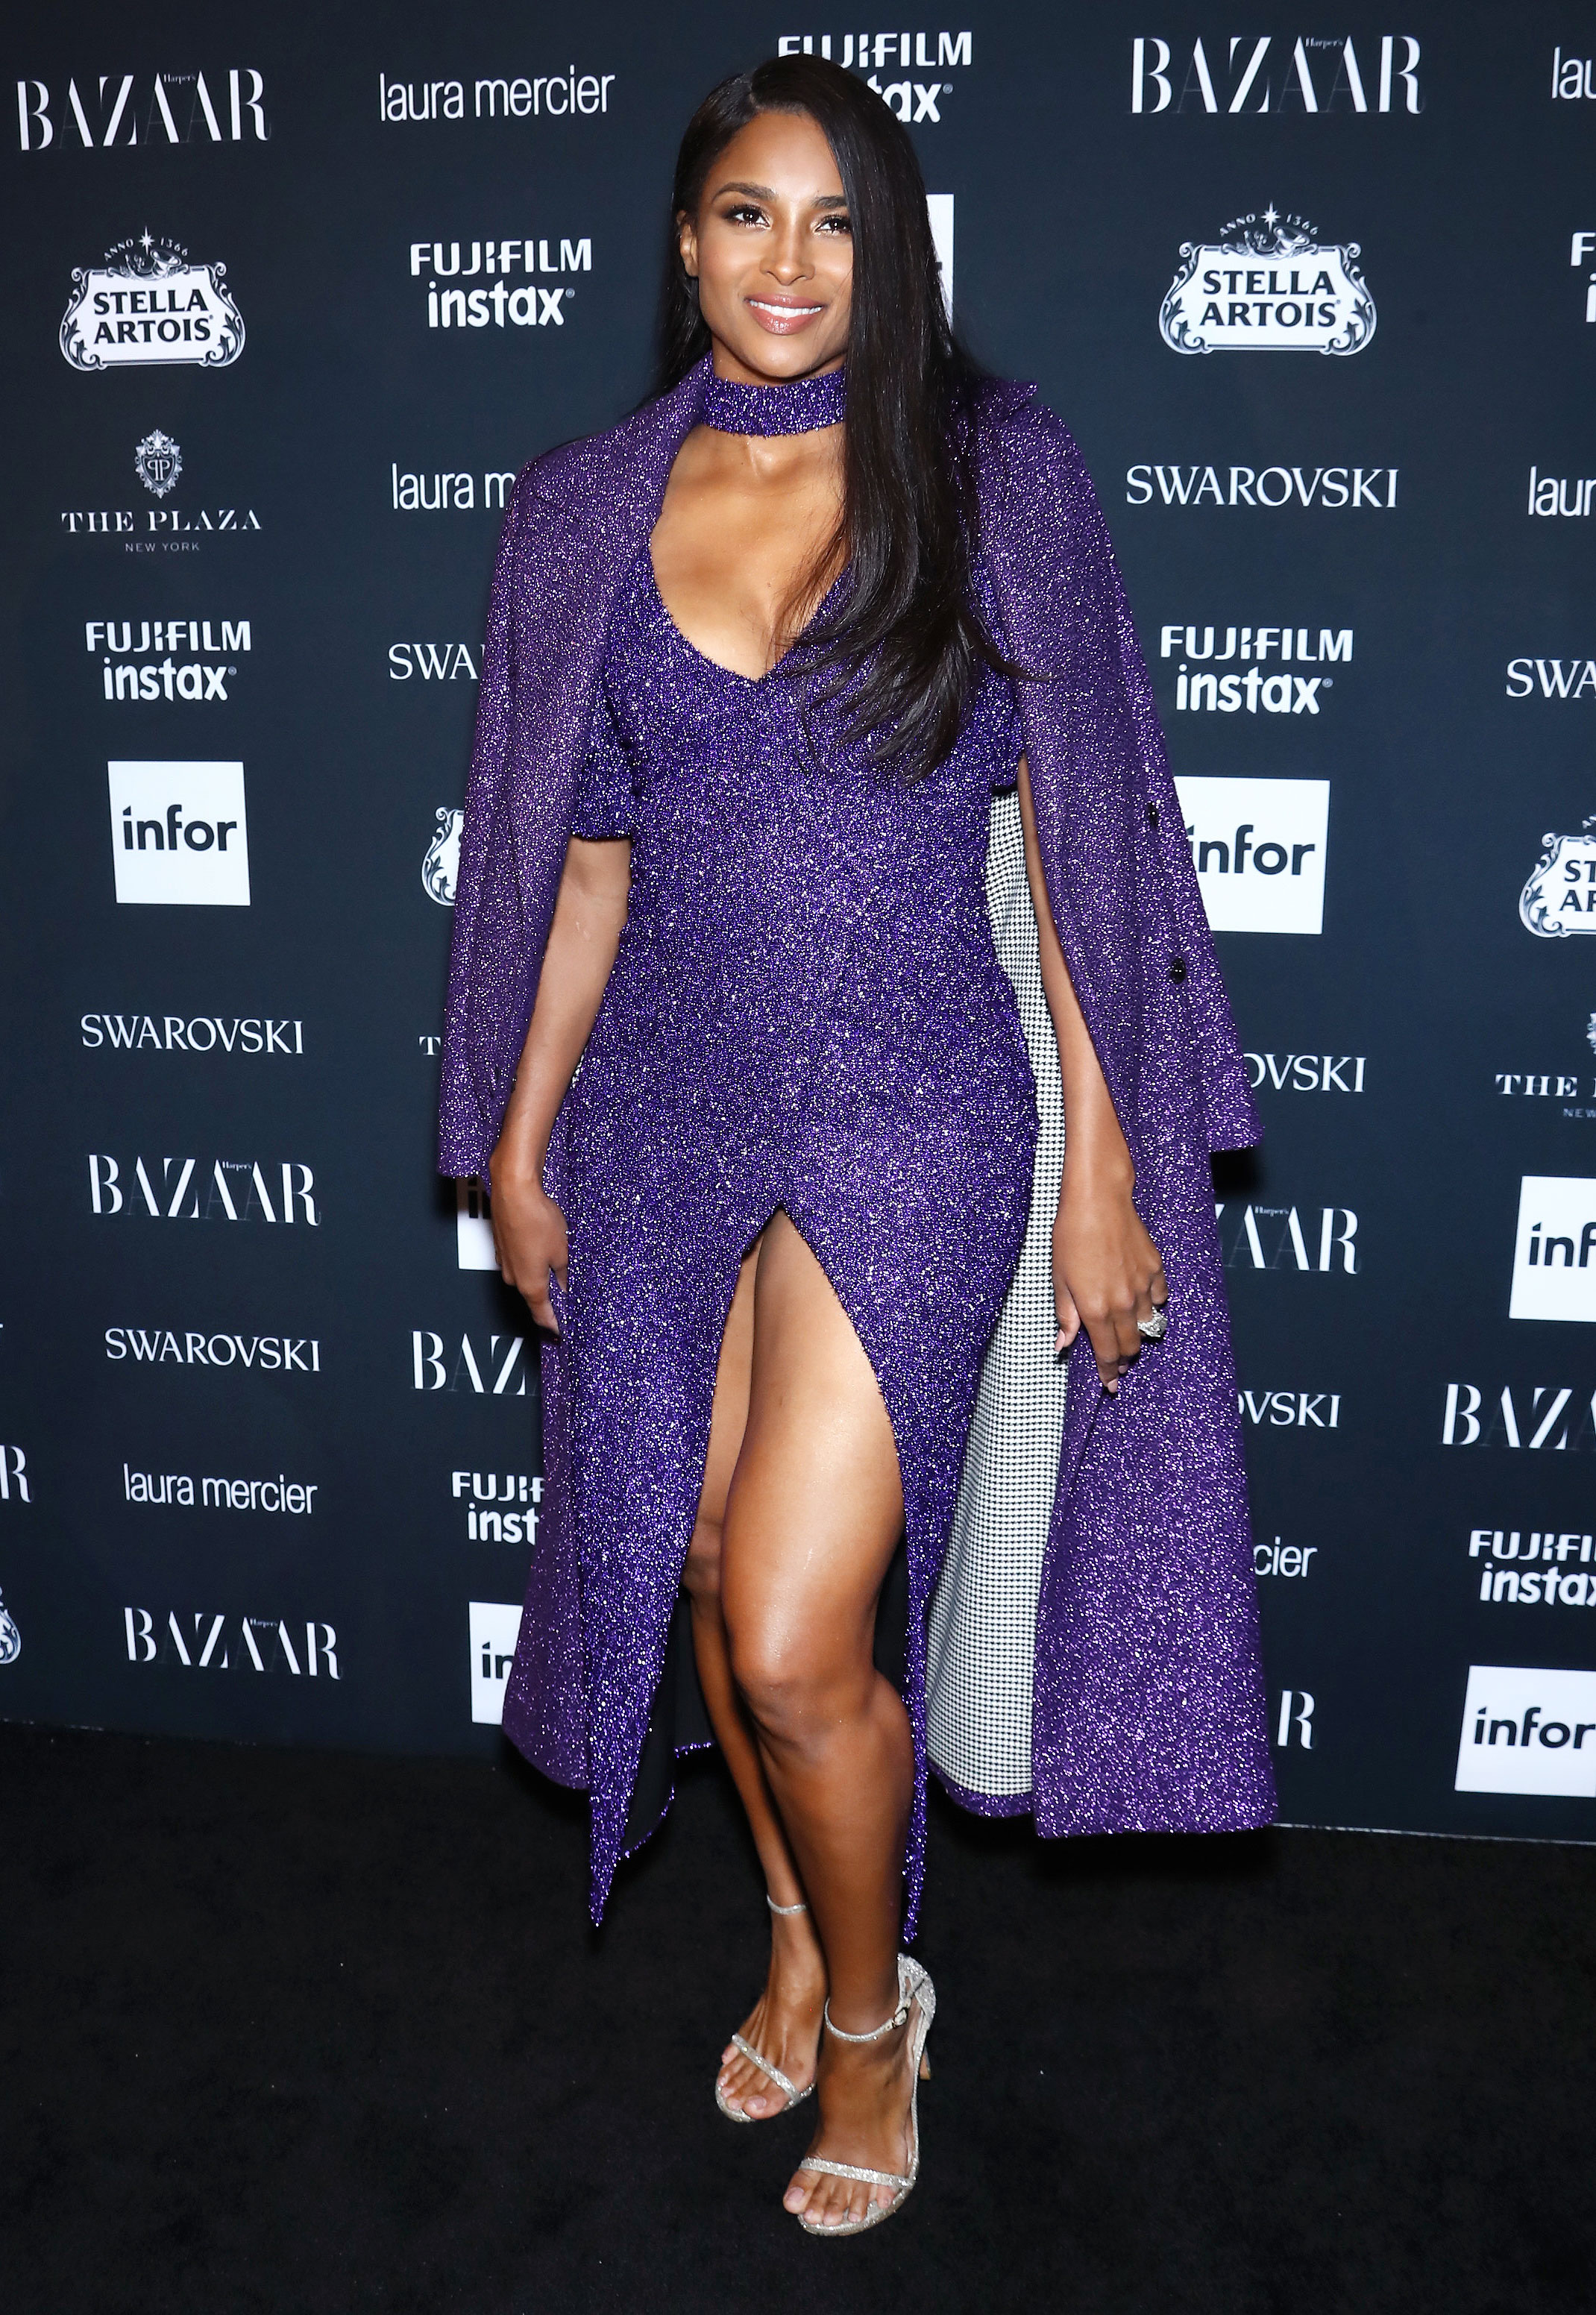 ciara - In a shimmering purple Rasario mididress and coat and Stuart Weitzman shoes at the Harper's Bazaar ICONS party.